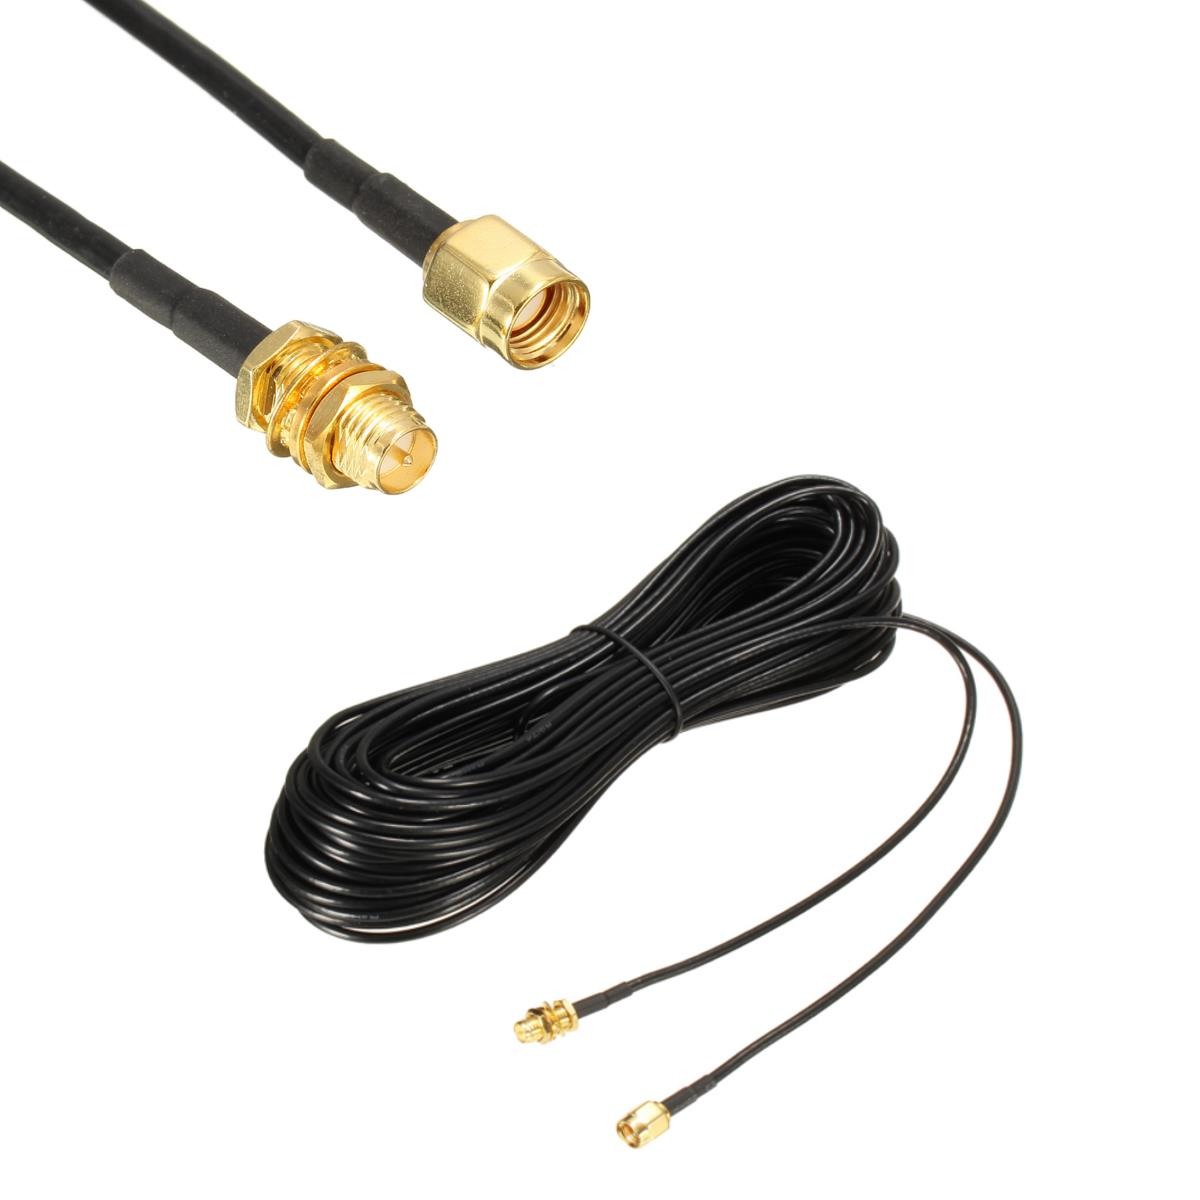 20CM/ 1M/ 5M/ 10M RP-SMA Male to Female Wireless